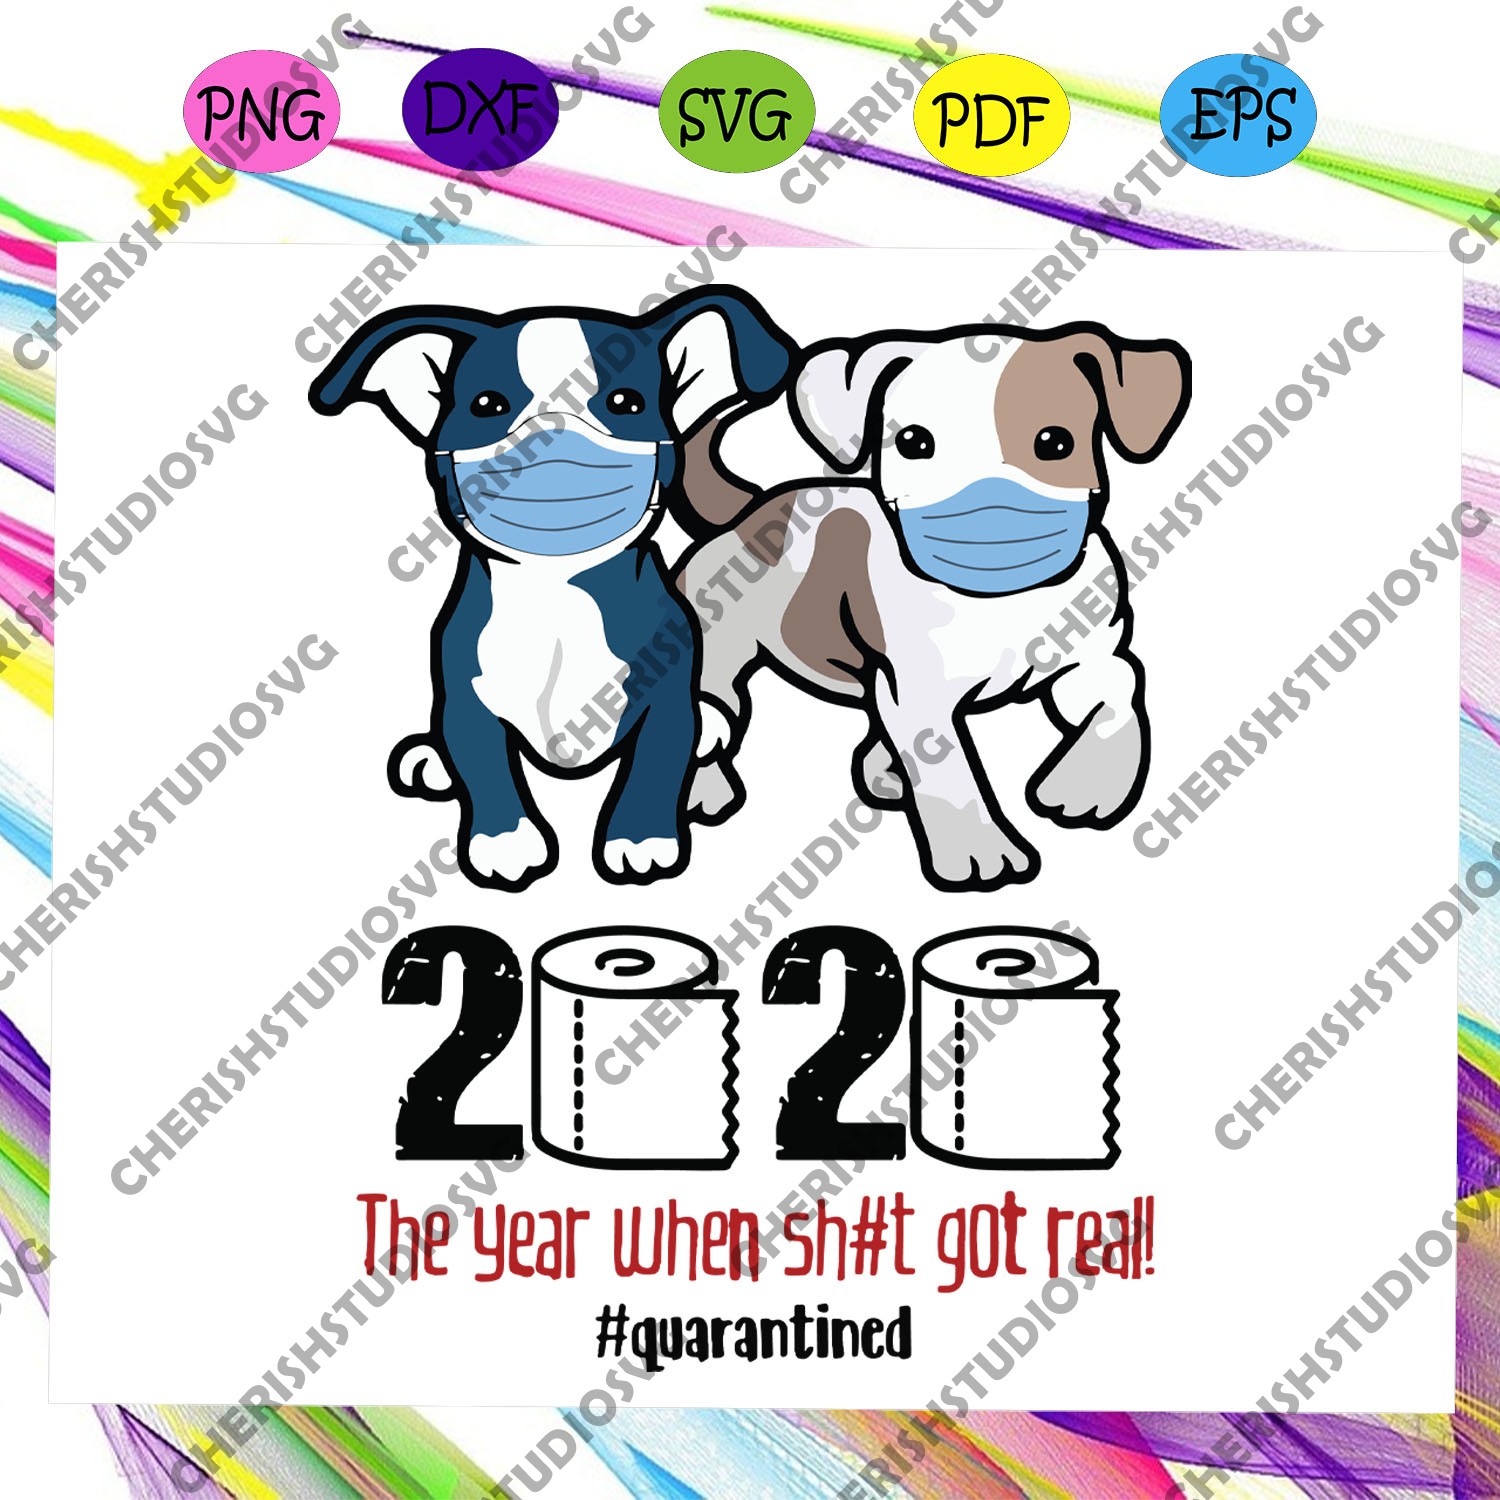 2020 the year when shit got real svg, 2020 quarantined svg, social distance svg, dogs svg, dogs lover svg, dogs lover gift svg, pet svg, pet lover svg, pet lover gift svg, Files For Silhouette, Files For Cricut, SVG, DXF, EPS, PNG, Instant Download